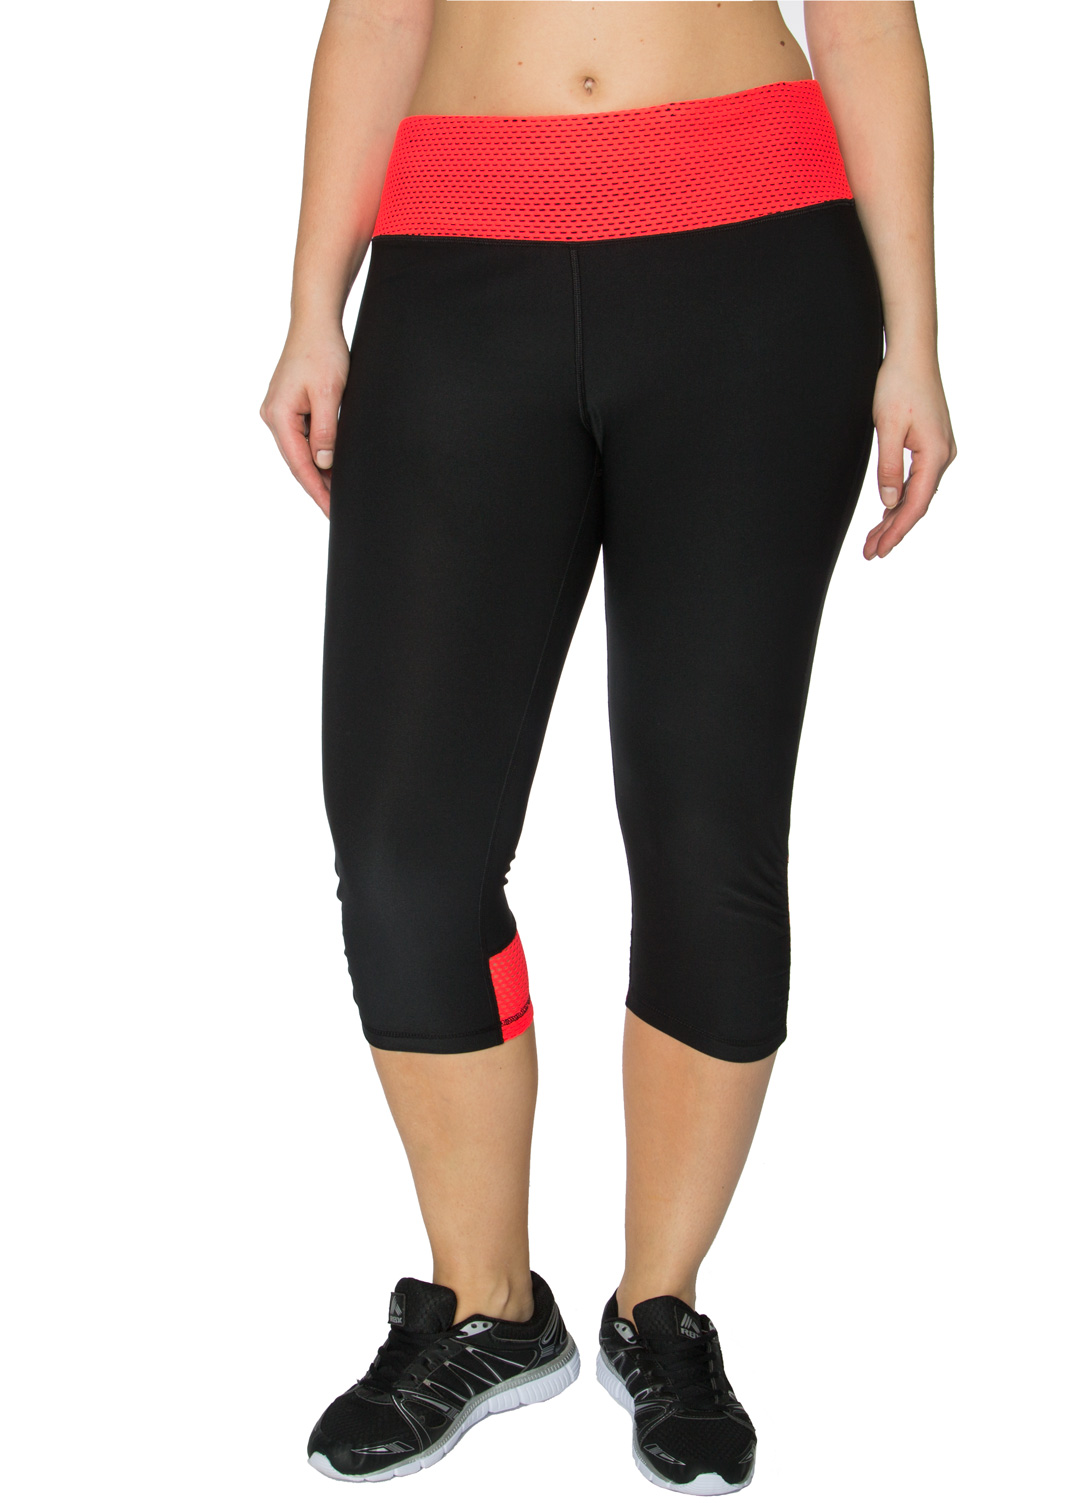 Stretch is Comfort Women's Foldover Plus Size Yoga Pants. by Stretch is Comfort. $ - $ $ 24 $ 28 99 Prime. FREE Shipping on eligible orders. Some sizes/colors are Prime eligible. out of .